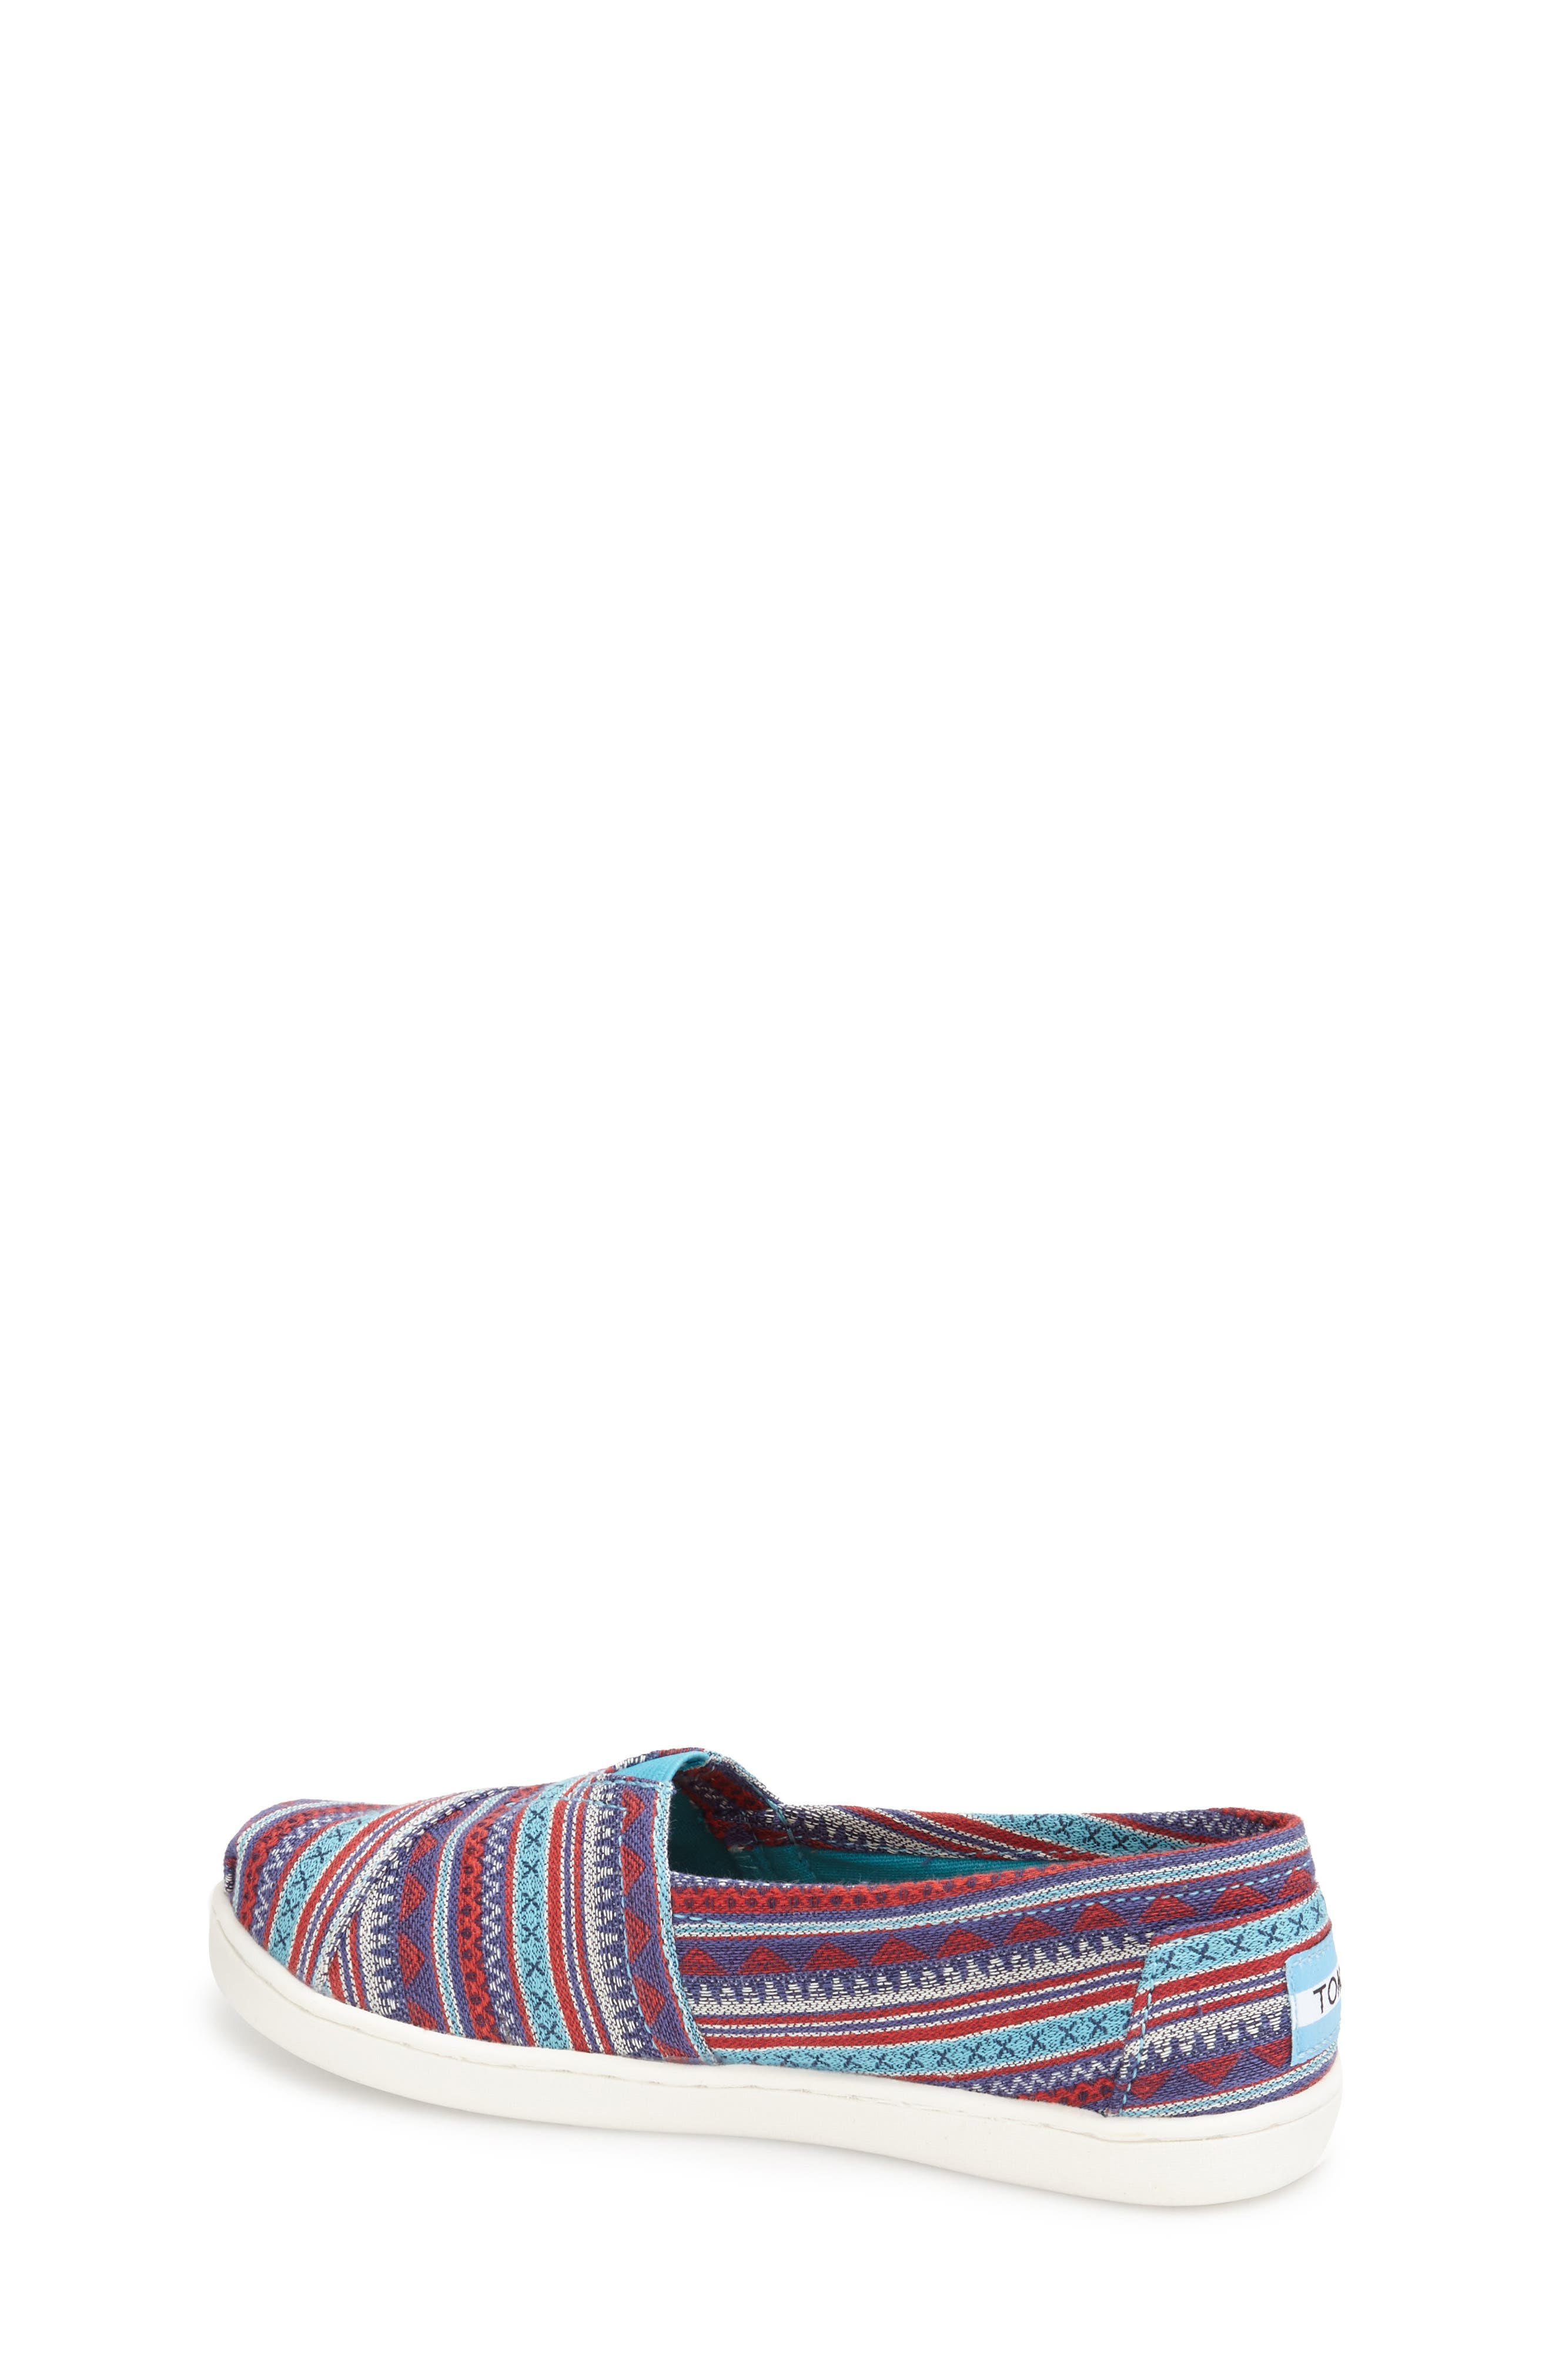 'Classic' Slip-On,                             Alternate thumbnail 3, color,                             420